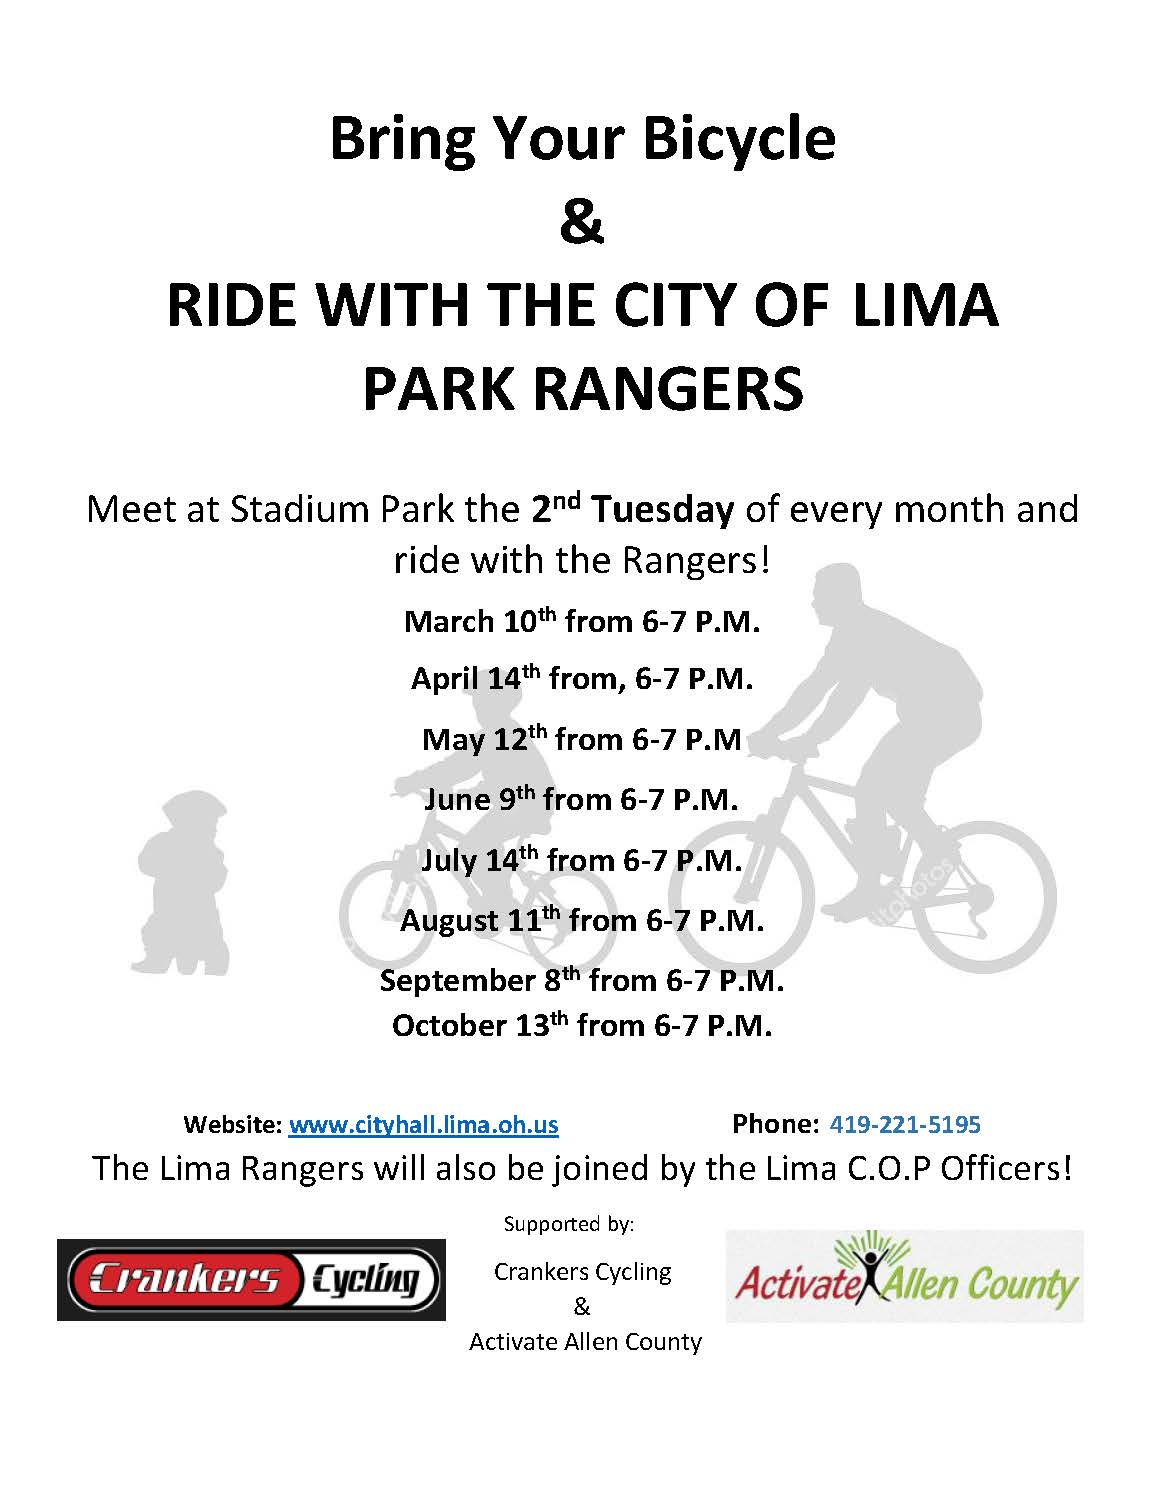 RIDE WITH THE PARK RANGERS